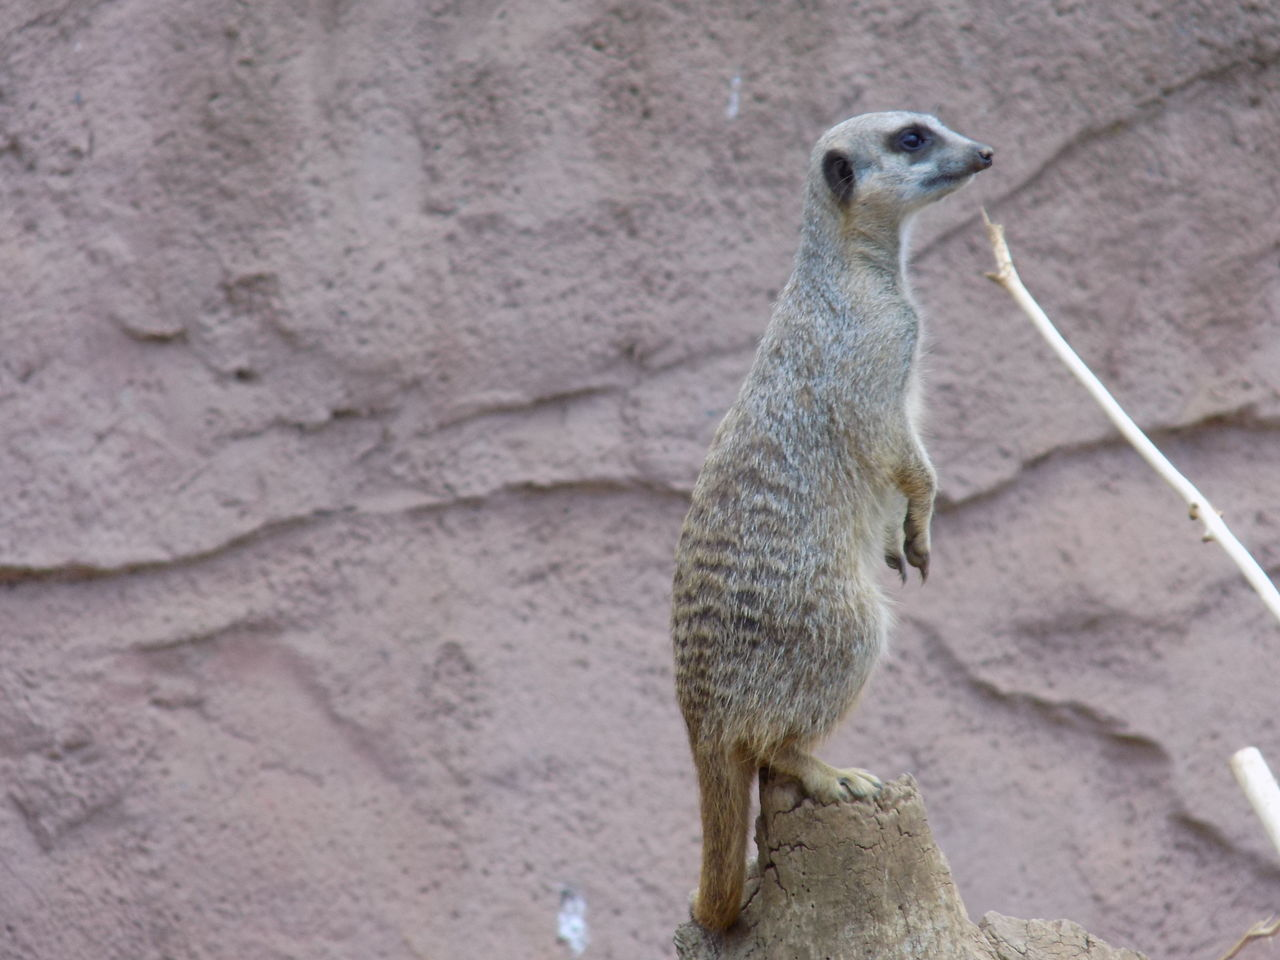 meerkat, one animal, animal themes, animals in the wild, animal wildlife, day, mammal, no people, outdoors, standing, sitting, nature, close-up